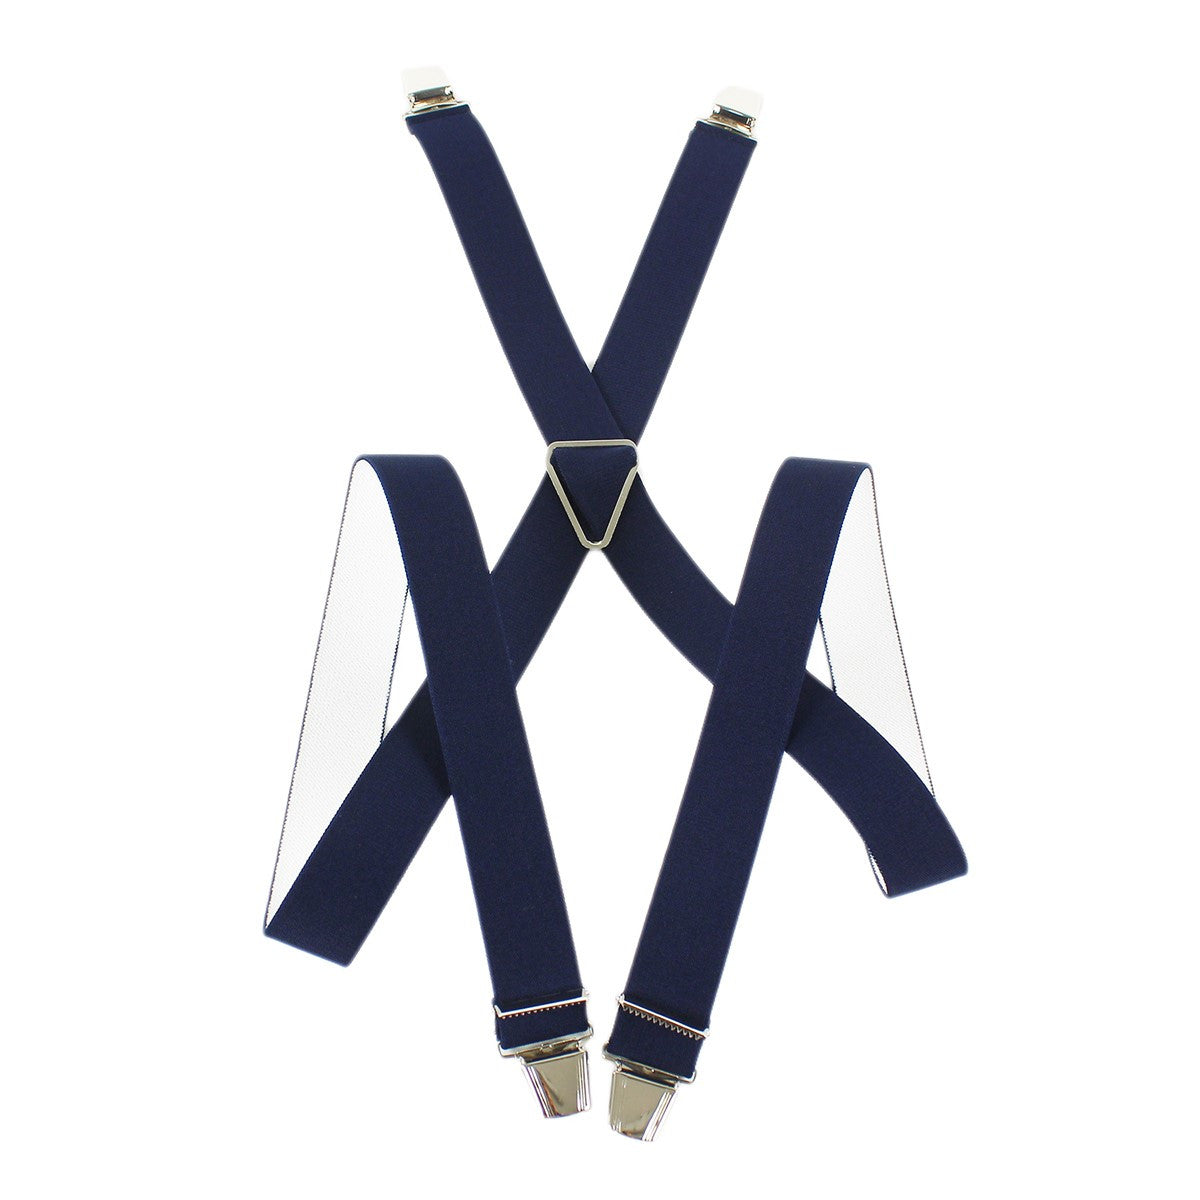 Elastic Suspenders X shape Clip end made in France navy